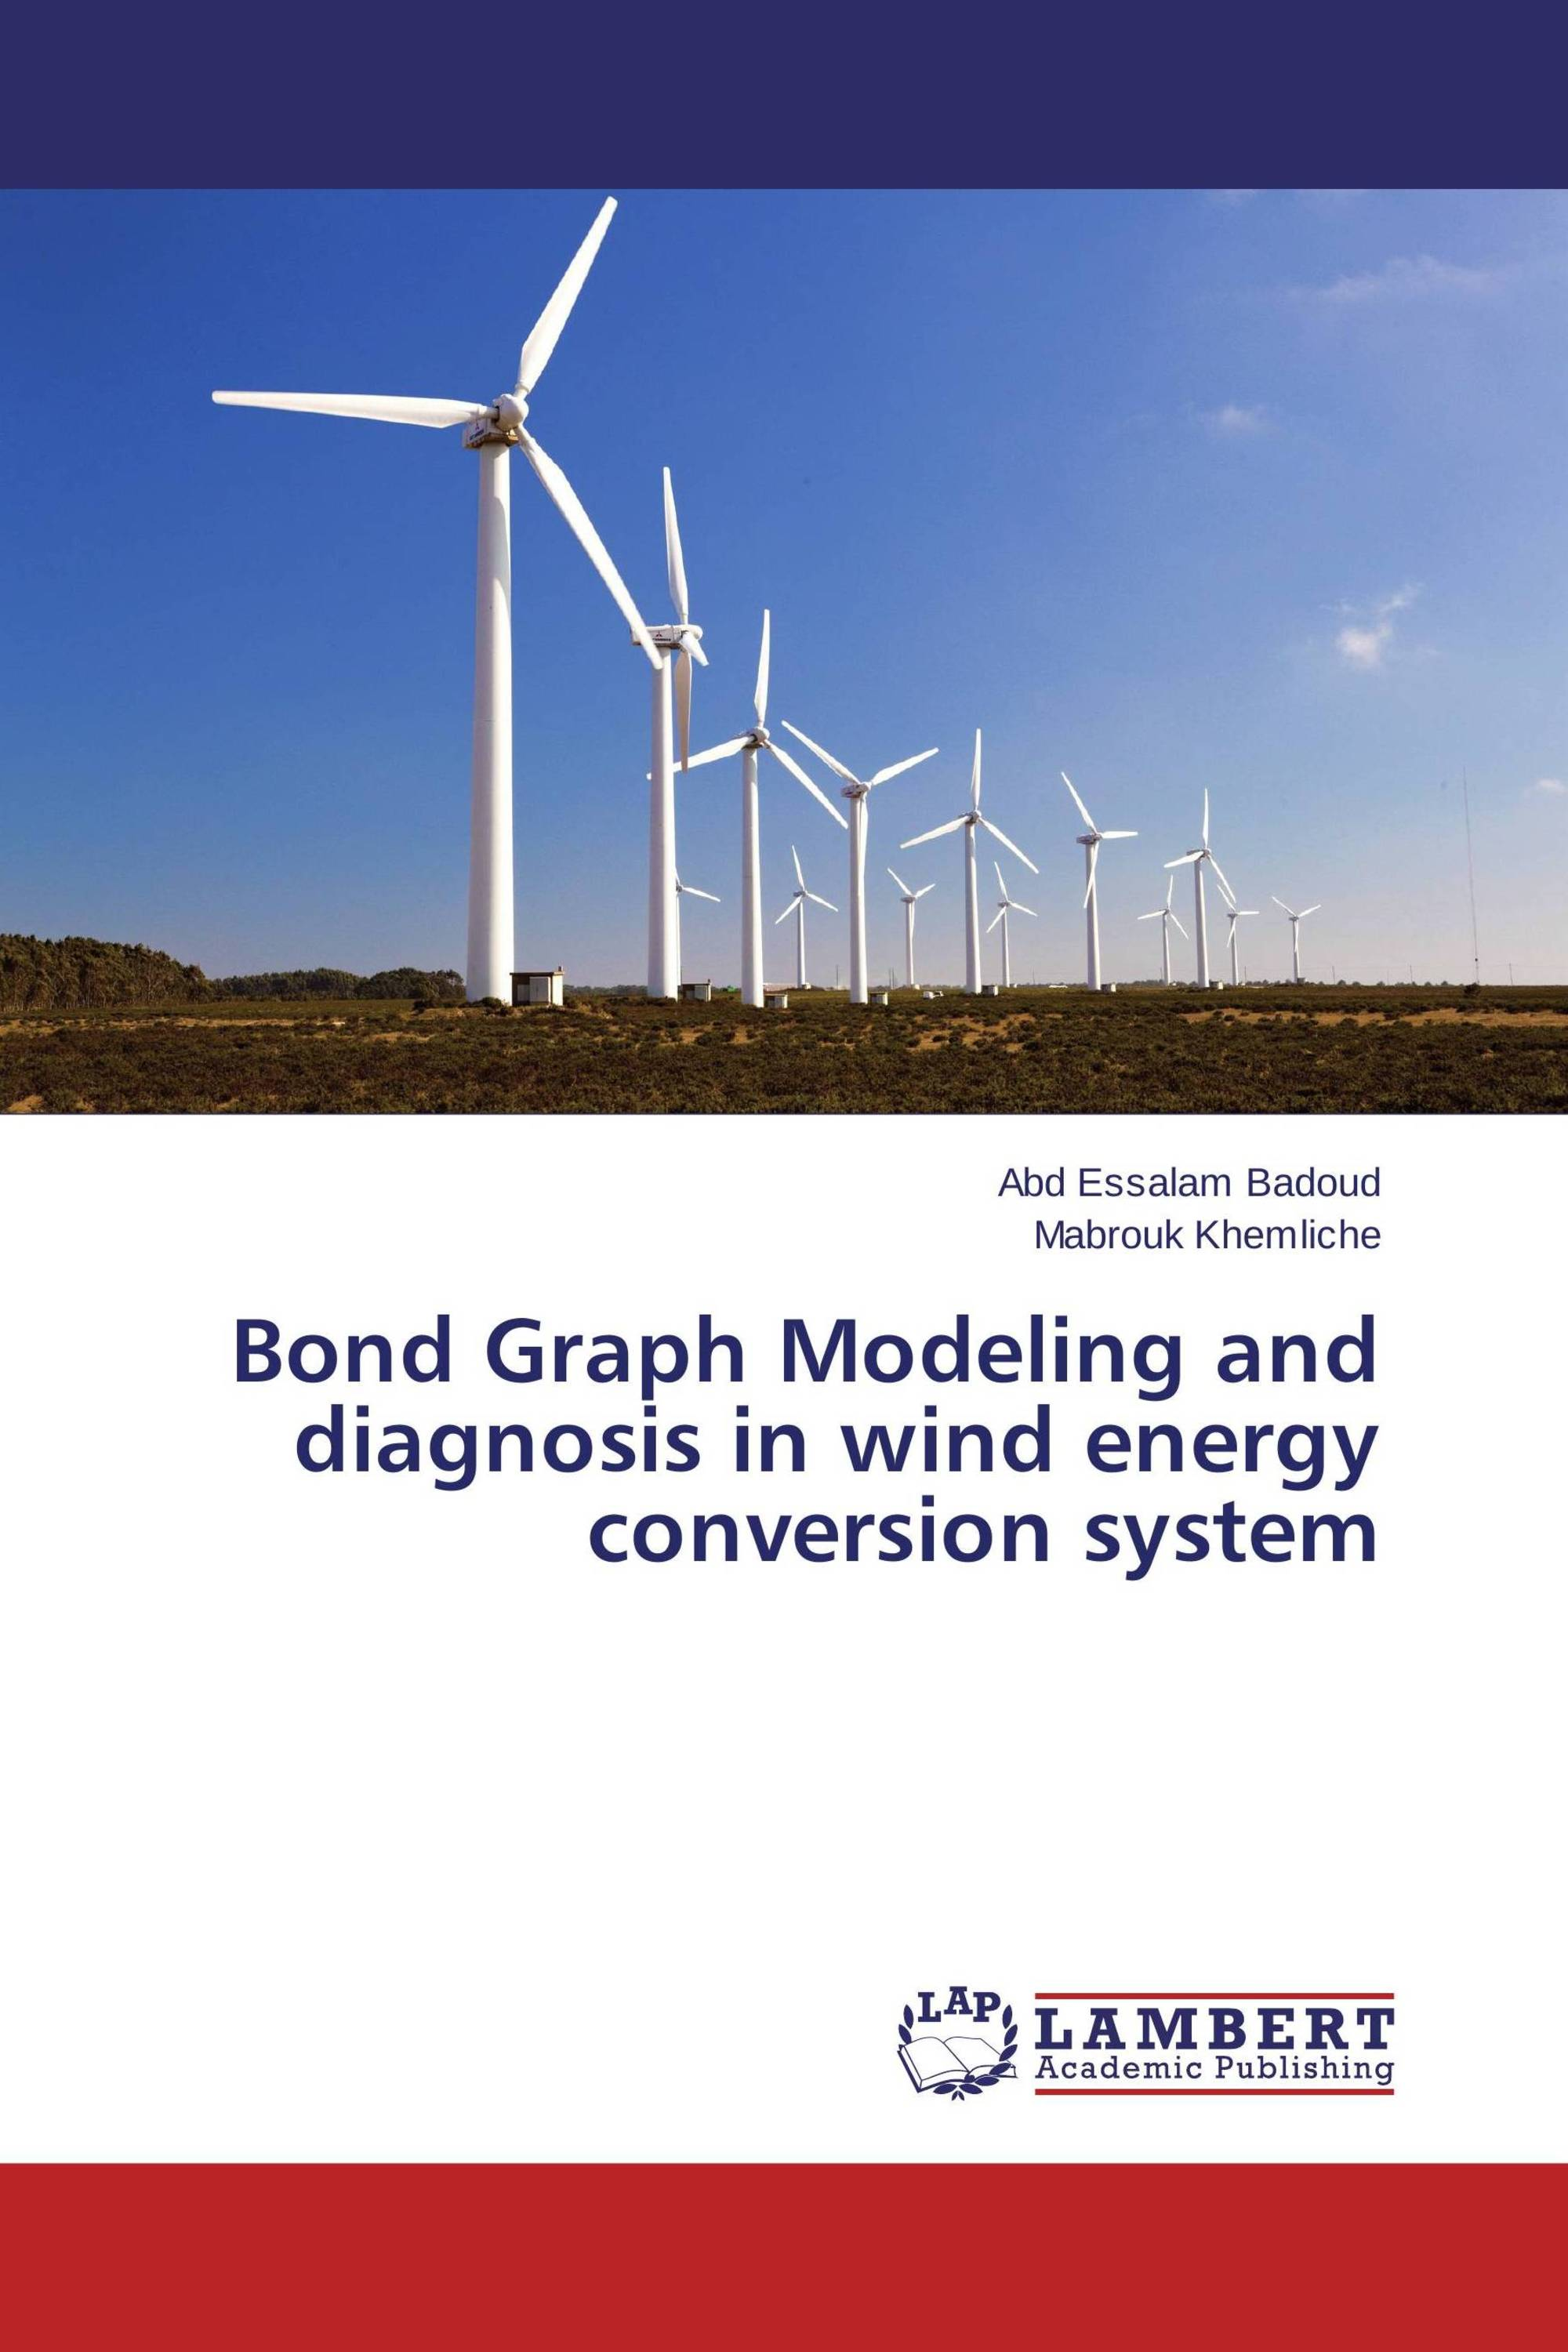 Bond Graph Modeling and diagnosis in wind energy conversion system